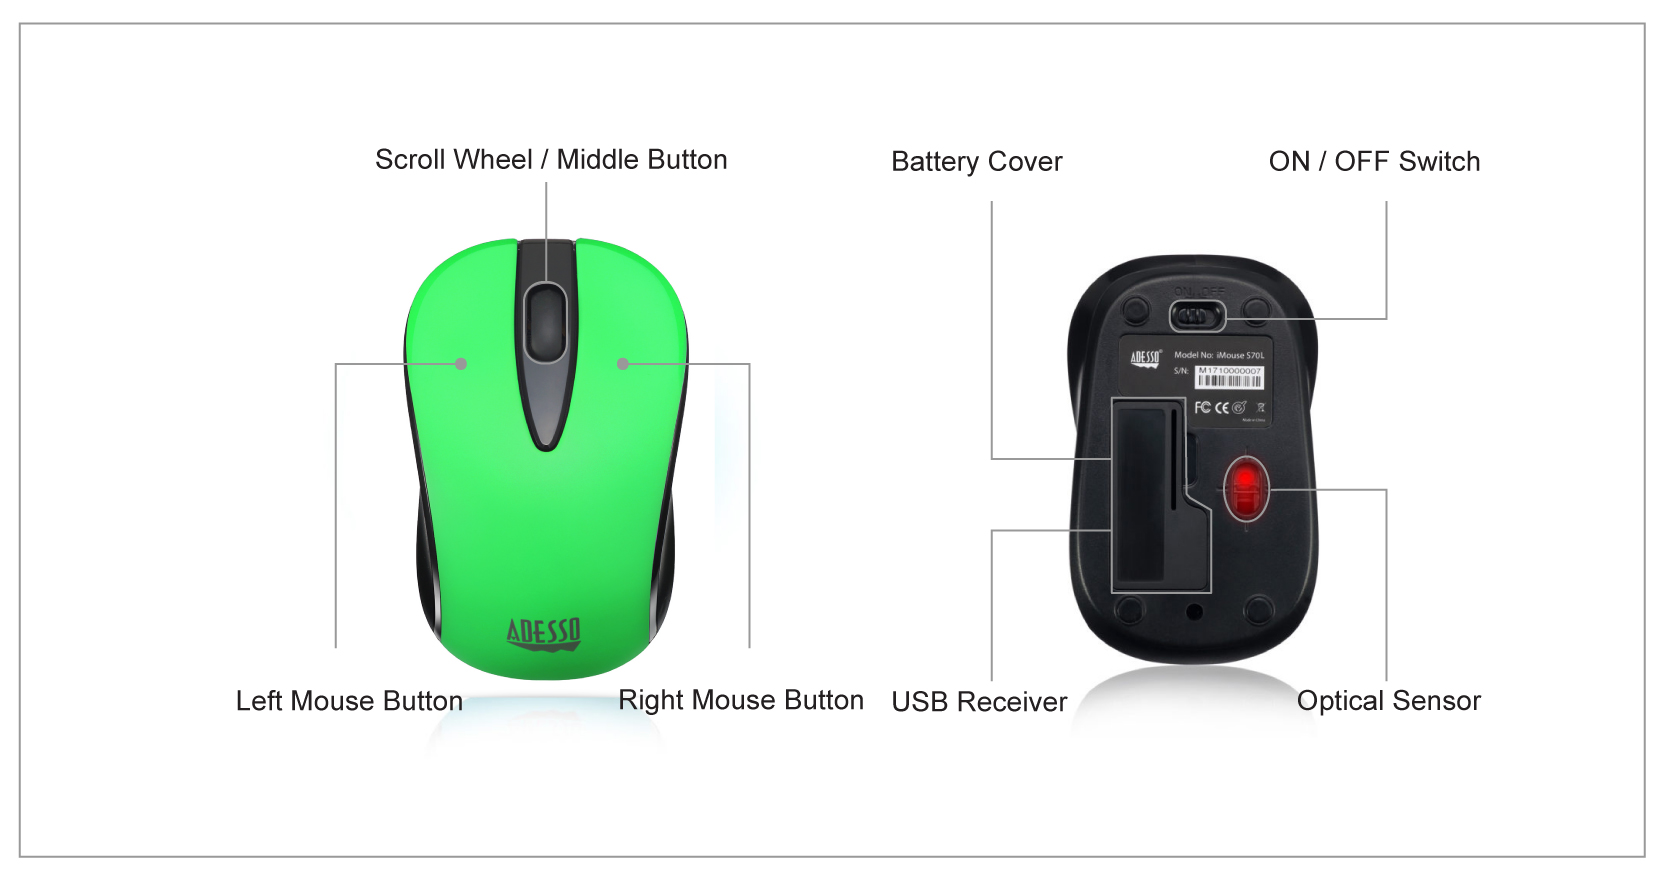 Imouse S70g Wireless Optical Neon Mouse Adesso Inc Your Advence W10 This Advanced Offers You 30 Feet Of Freedom And Eliminates The Constraints Wired Mice Often Cause